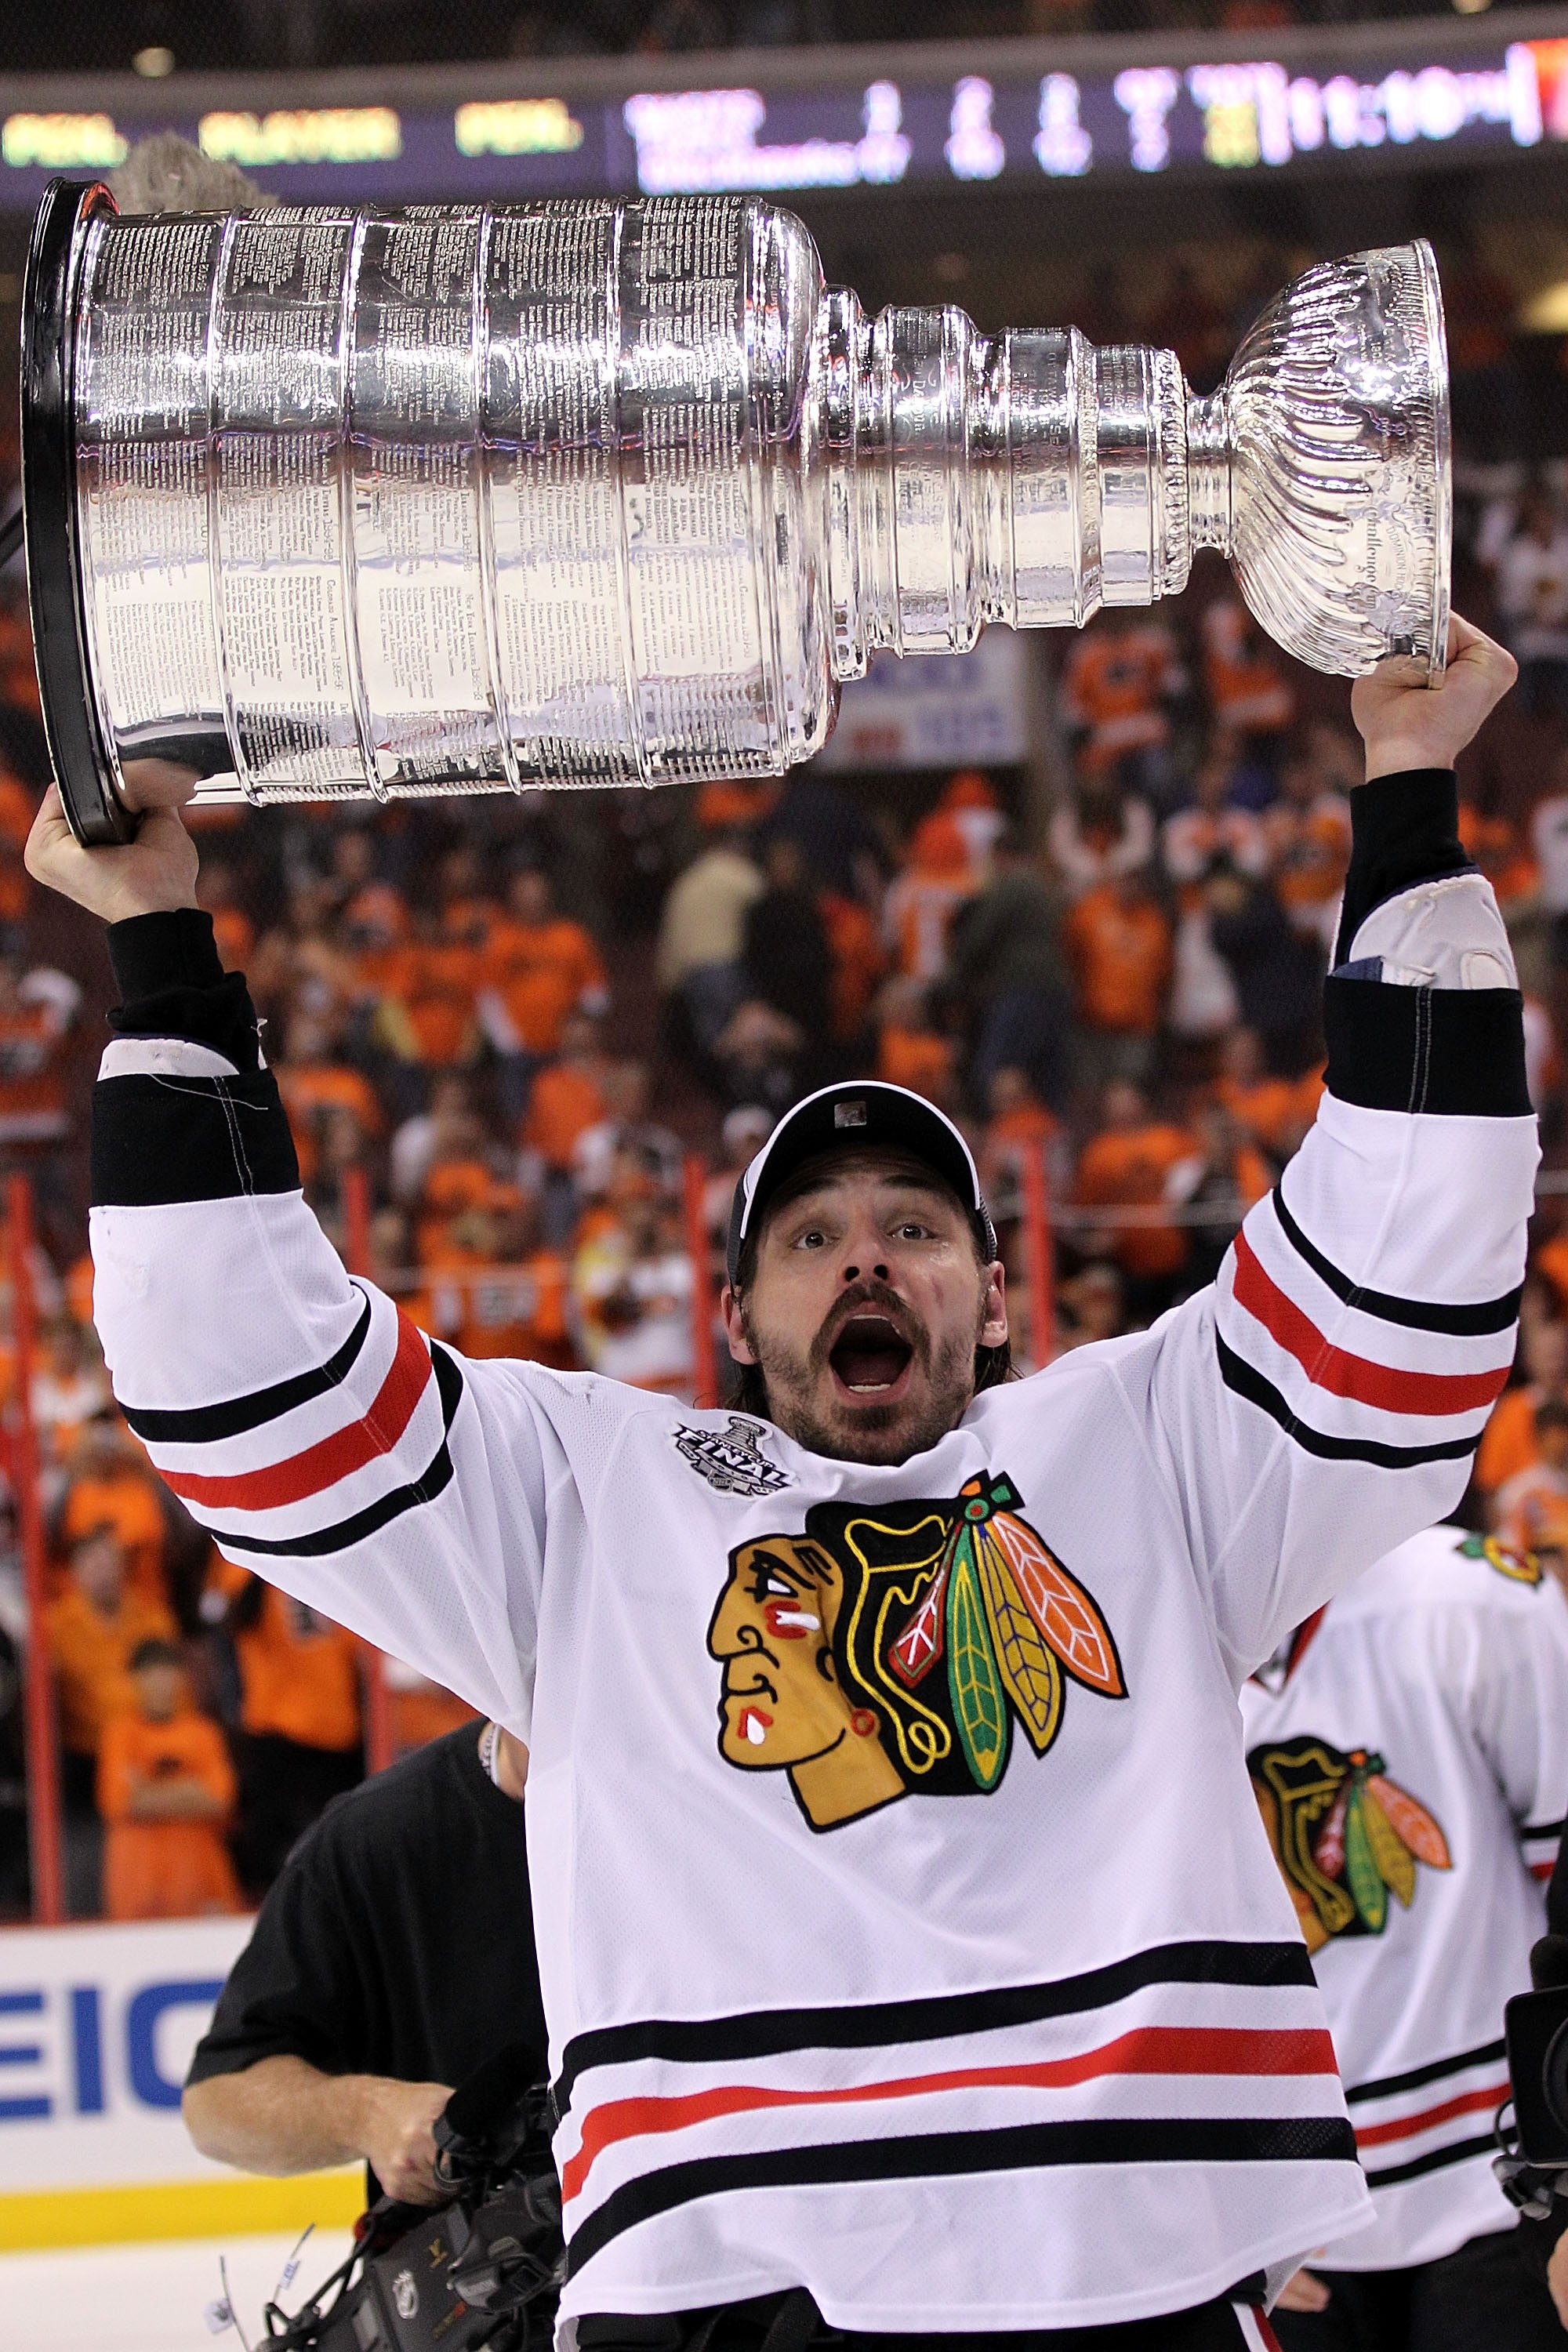 PHILADELPHIA - JUNE 09:  Brent Sopel #5 of the Chicago Blackhawks hoists the Stanley Cup after the Blackhawks defeated the Philadelphia Flyers 4-3 in overtime to win the Stanley Cup in Game Six of the 2010 NHL Stanley Cup Final at the Wachovia Center on J